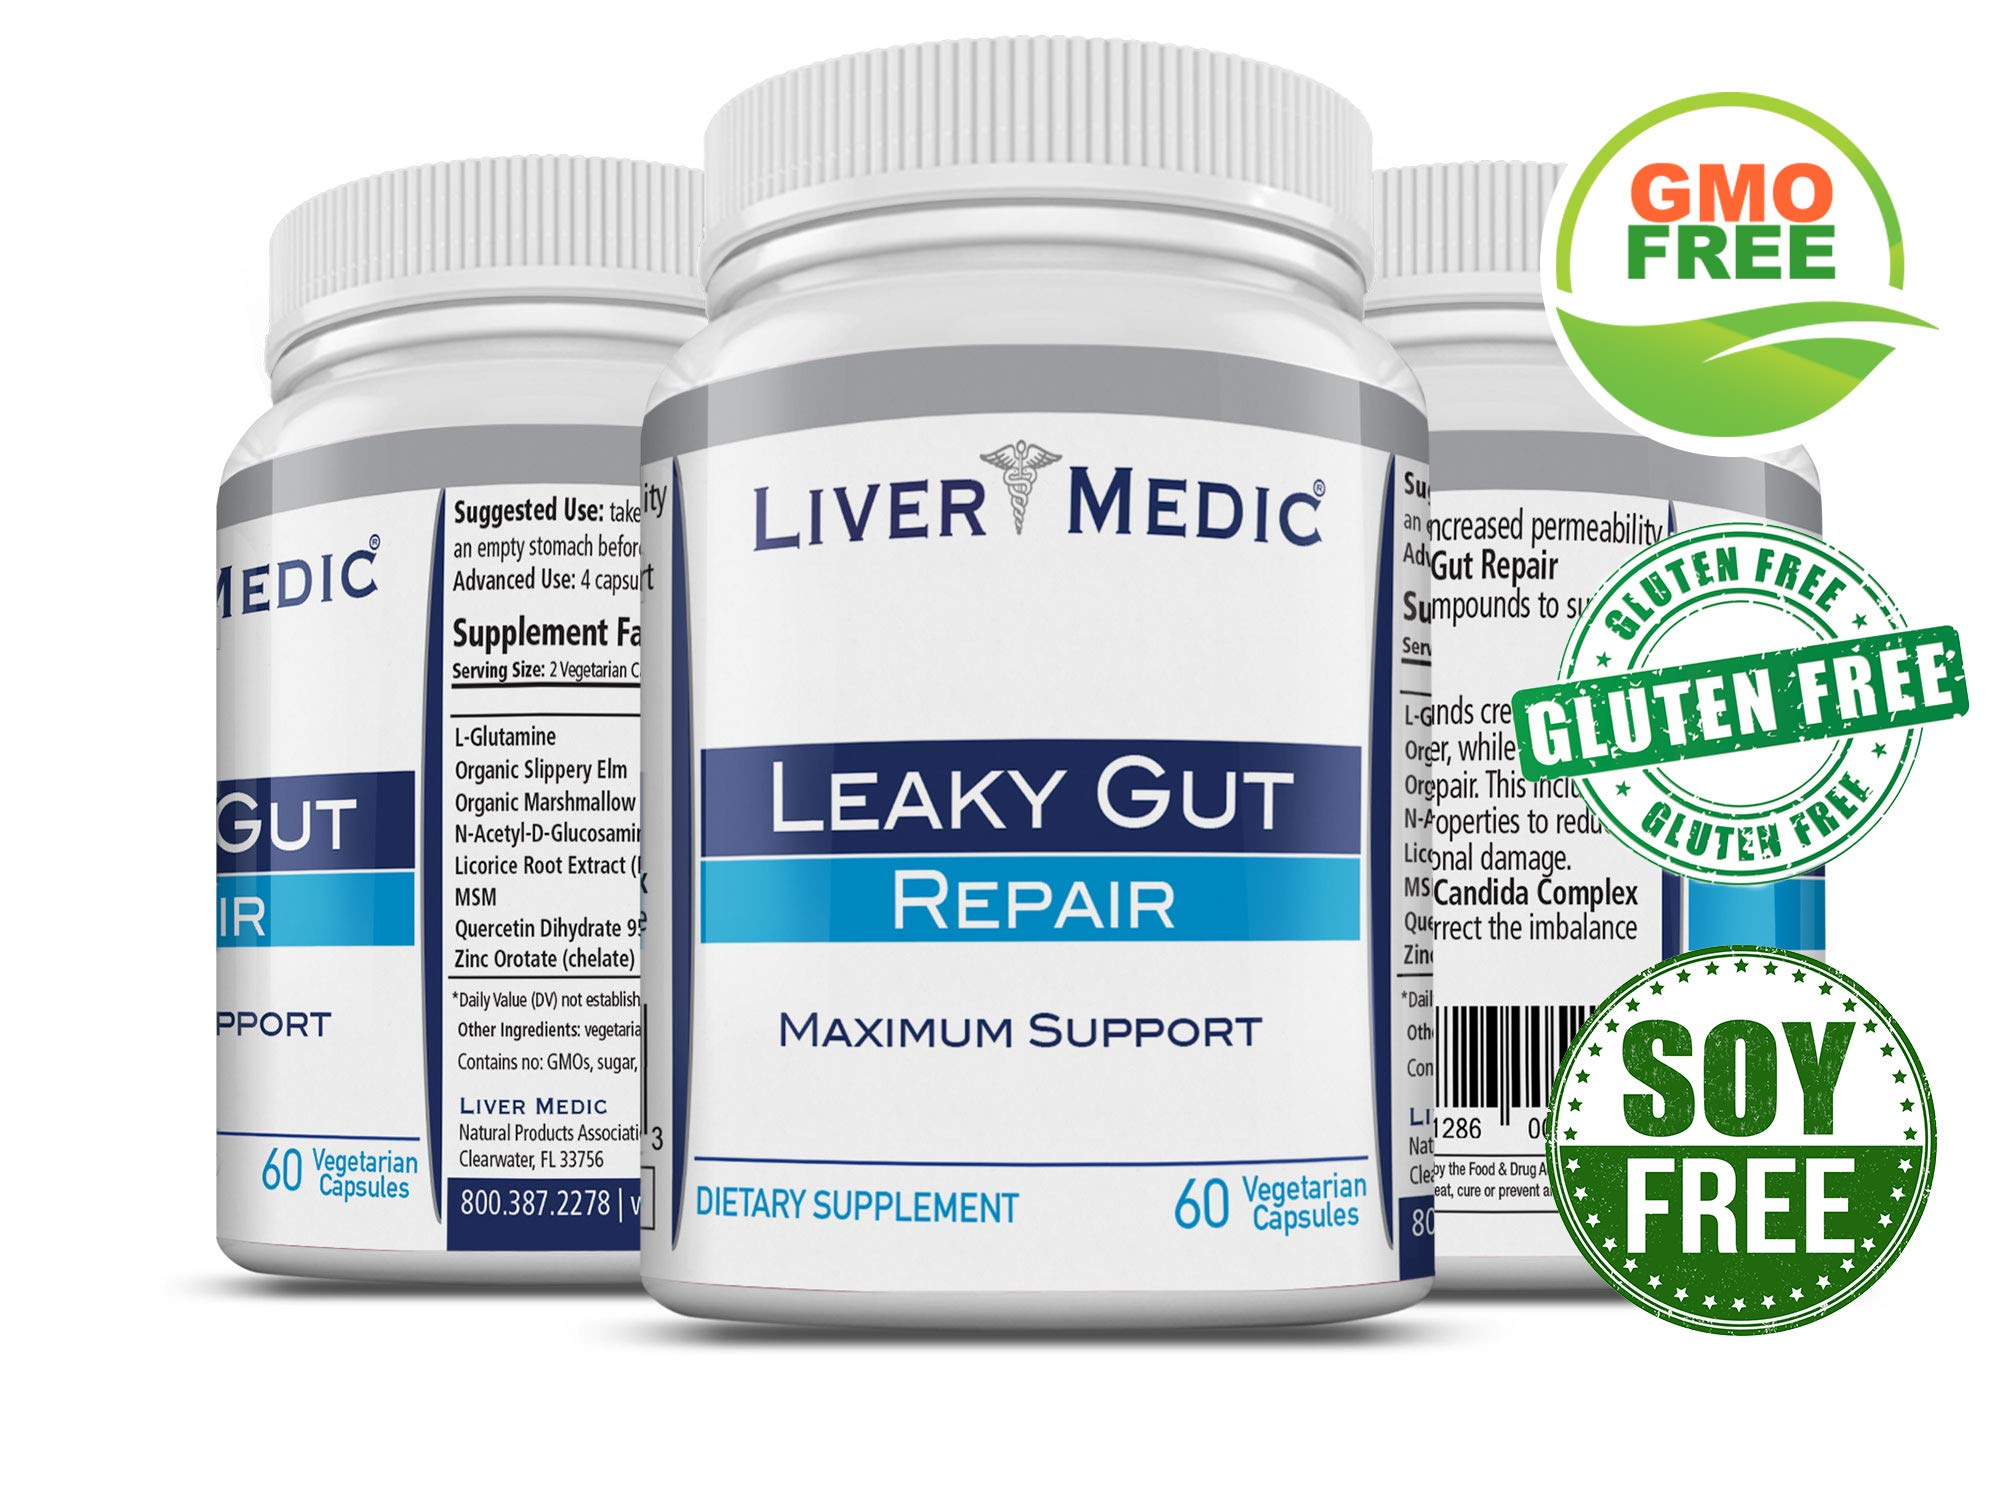 Leaky Gut Repair Supplements by Liver Medic | Gut Healing Support. for Relief of Heartburn. Bloating, Gas, Constipation, Diverticulitis, SIBO. Contains L-Glutamine, Slippery Elm, Zinc, NAG by Liver Medic